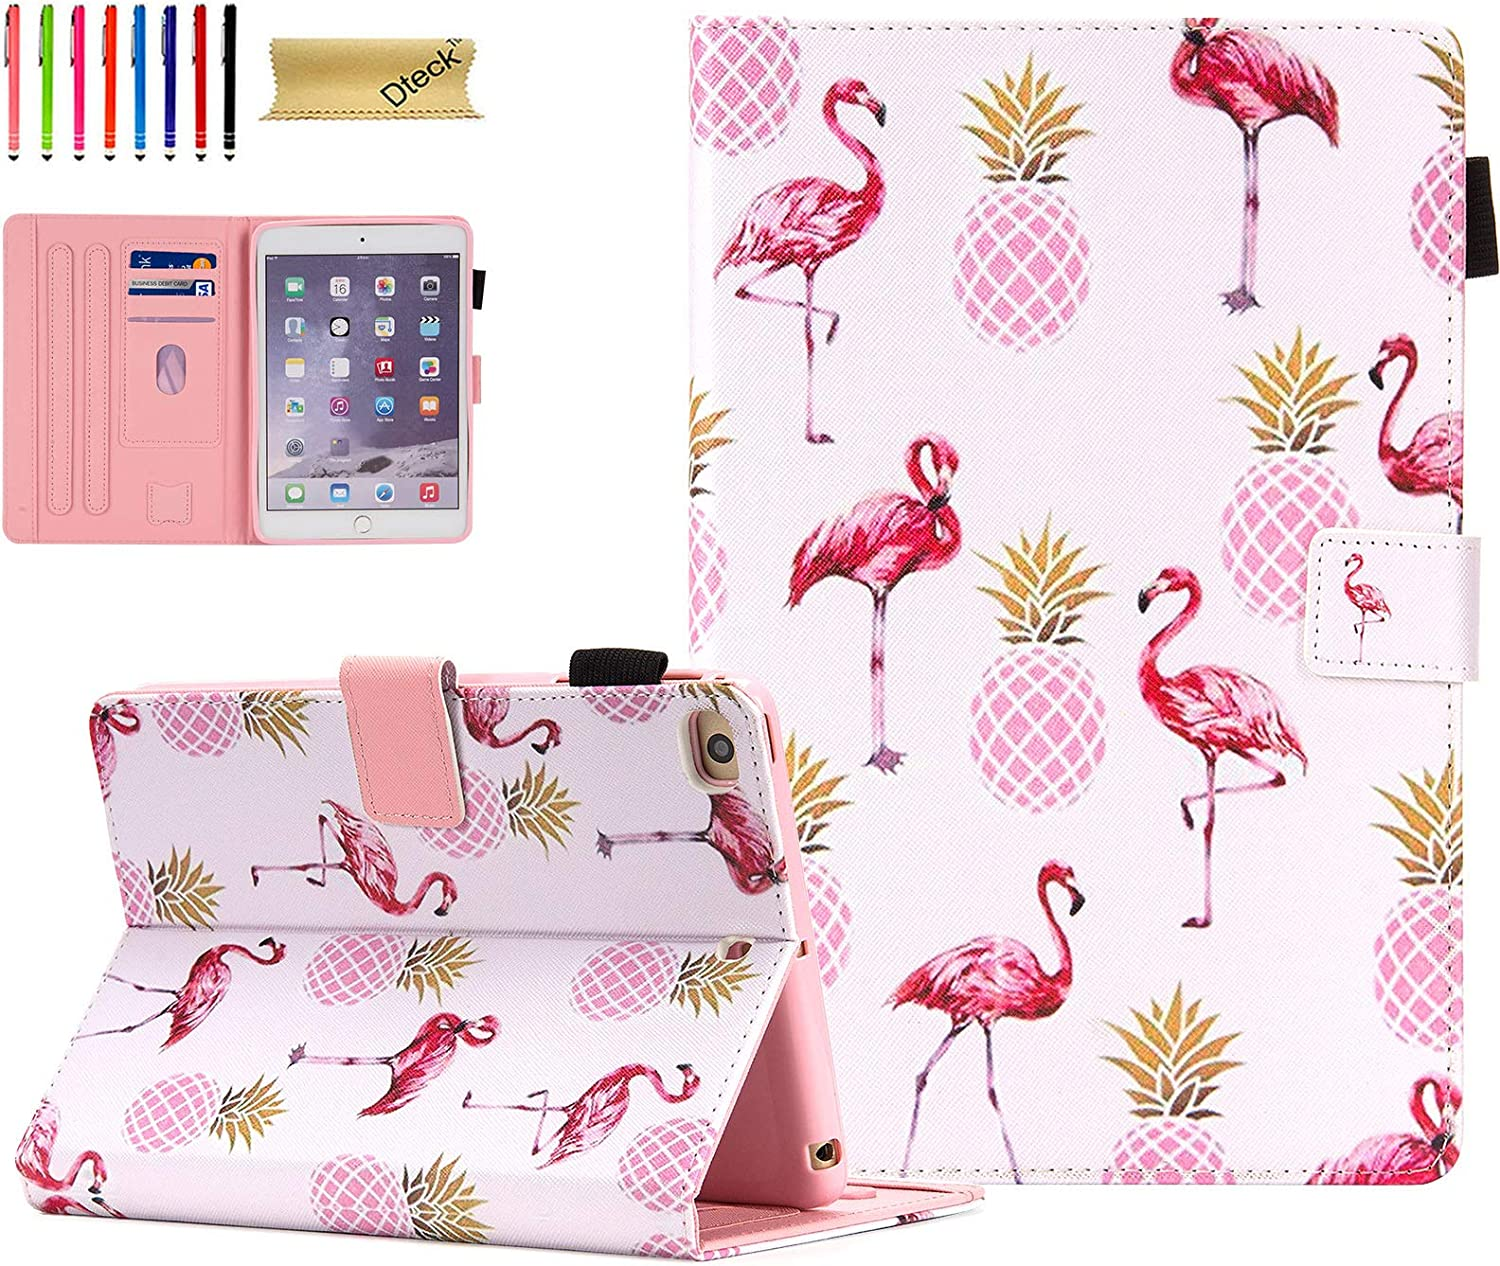 Dteck iPad Mini 5 Case/iPad Mini 4 Case/iPad Mini 3 2 1 Cases and Covers - Slim Folio Flip Stand Wallet Case Auto Wake/Sleep Magnet Smart Cover for Mini iPad 7.9 Inch Tablet, Pineapples & Flamingo